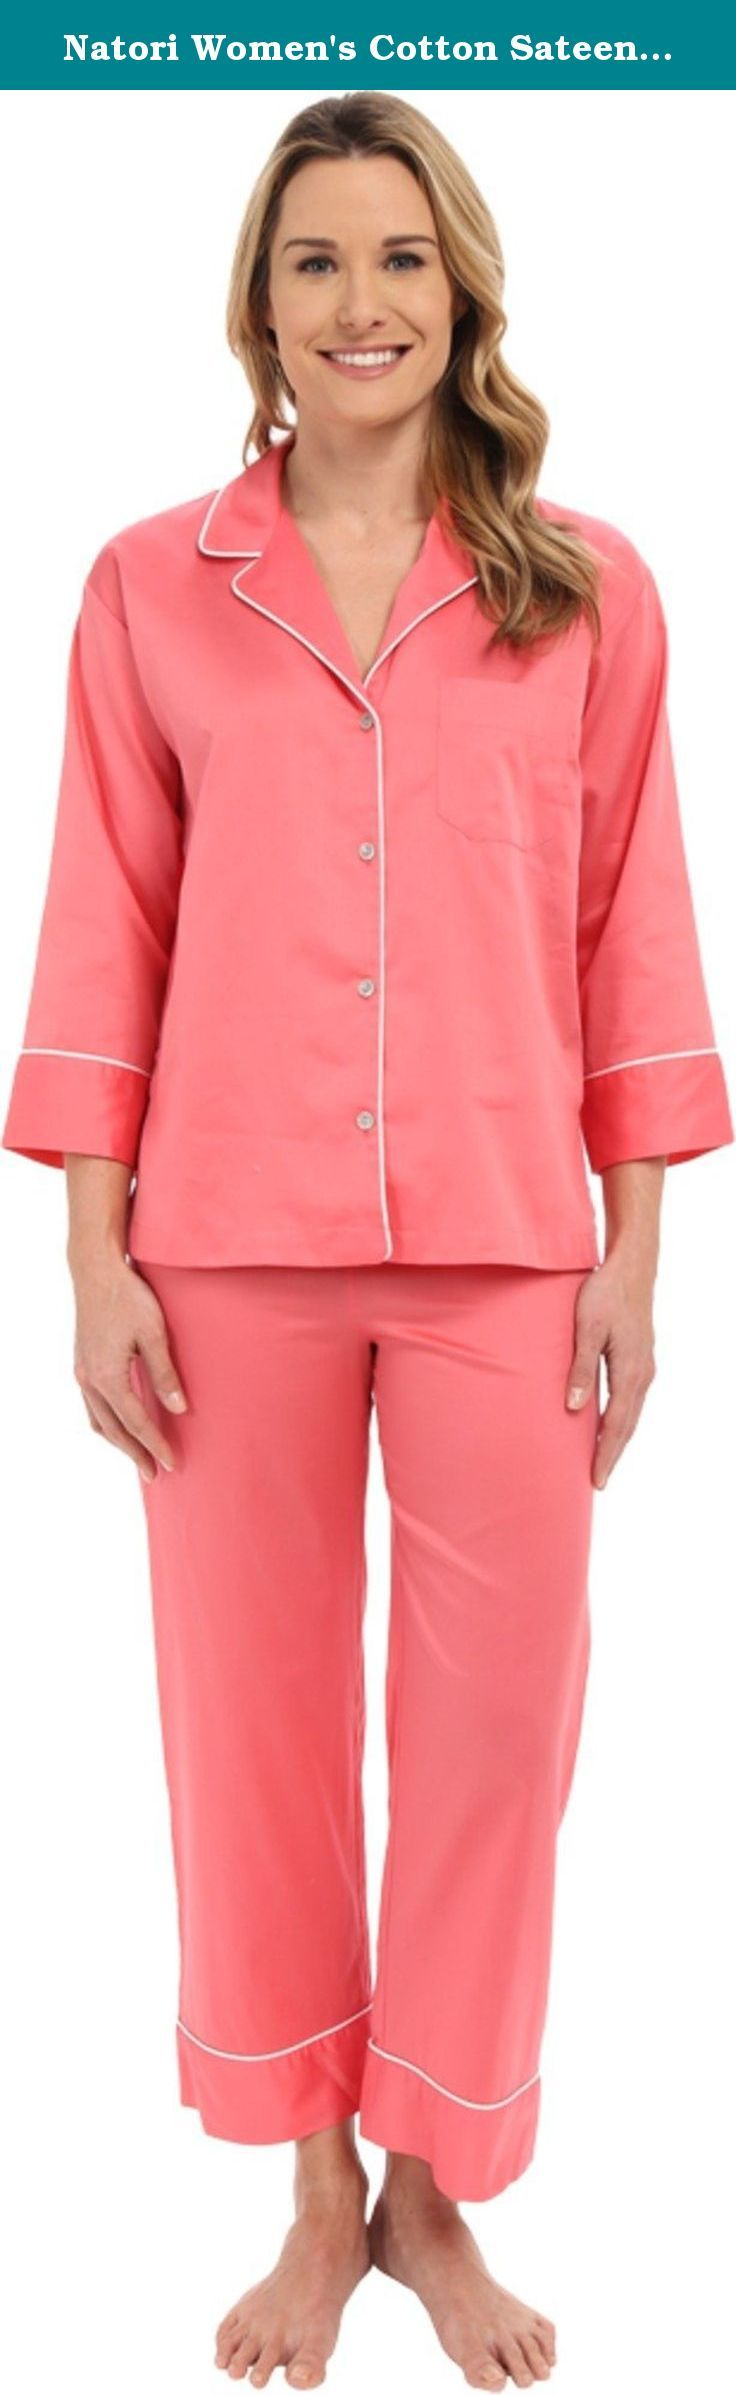 Natori Women's Cotton Sateen PJ Daiquiry Pink Pajama Set M (Women's 10-12). Silky smooth sateen PJ set flaunts contrast piping throughout. Notched lapel collar. Long sleeves with cuffs. Single left chest pocket. Full button front closure. Sleep shirt features a straight hem. Drawstring at waistline. Piping detail at ankle cuffs. 100% cotton. Machine wash cold, tumble dry low. Made in the.